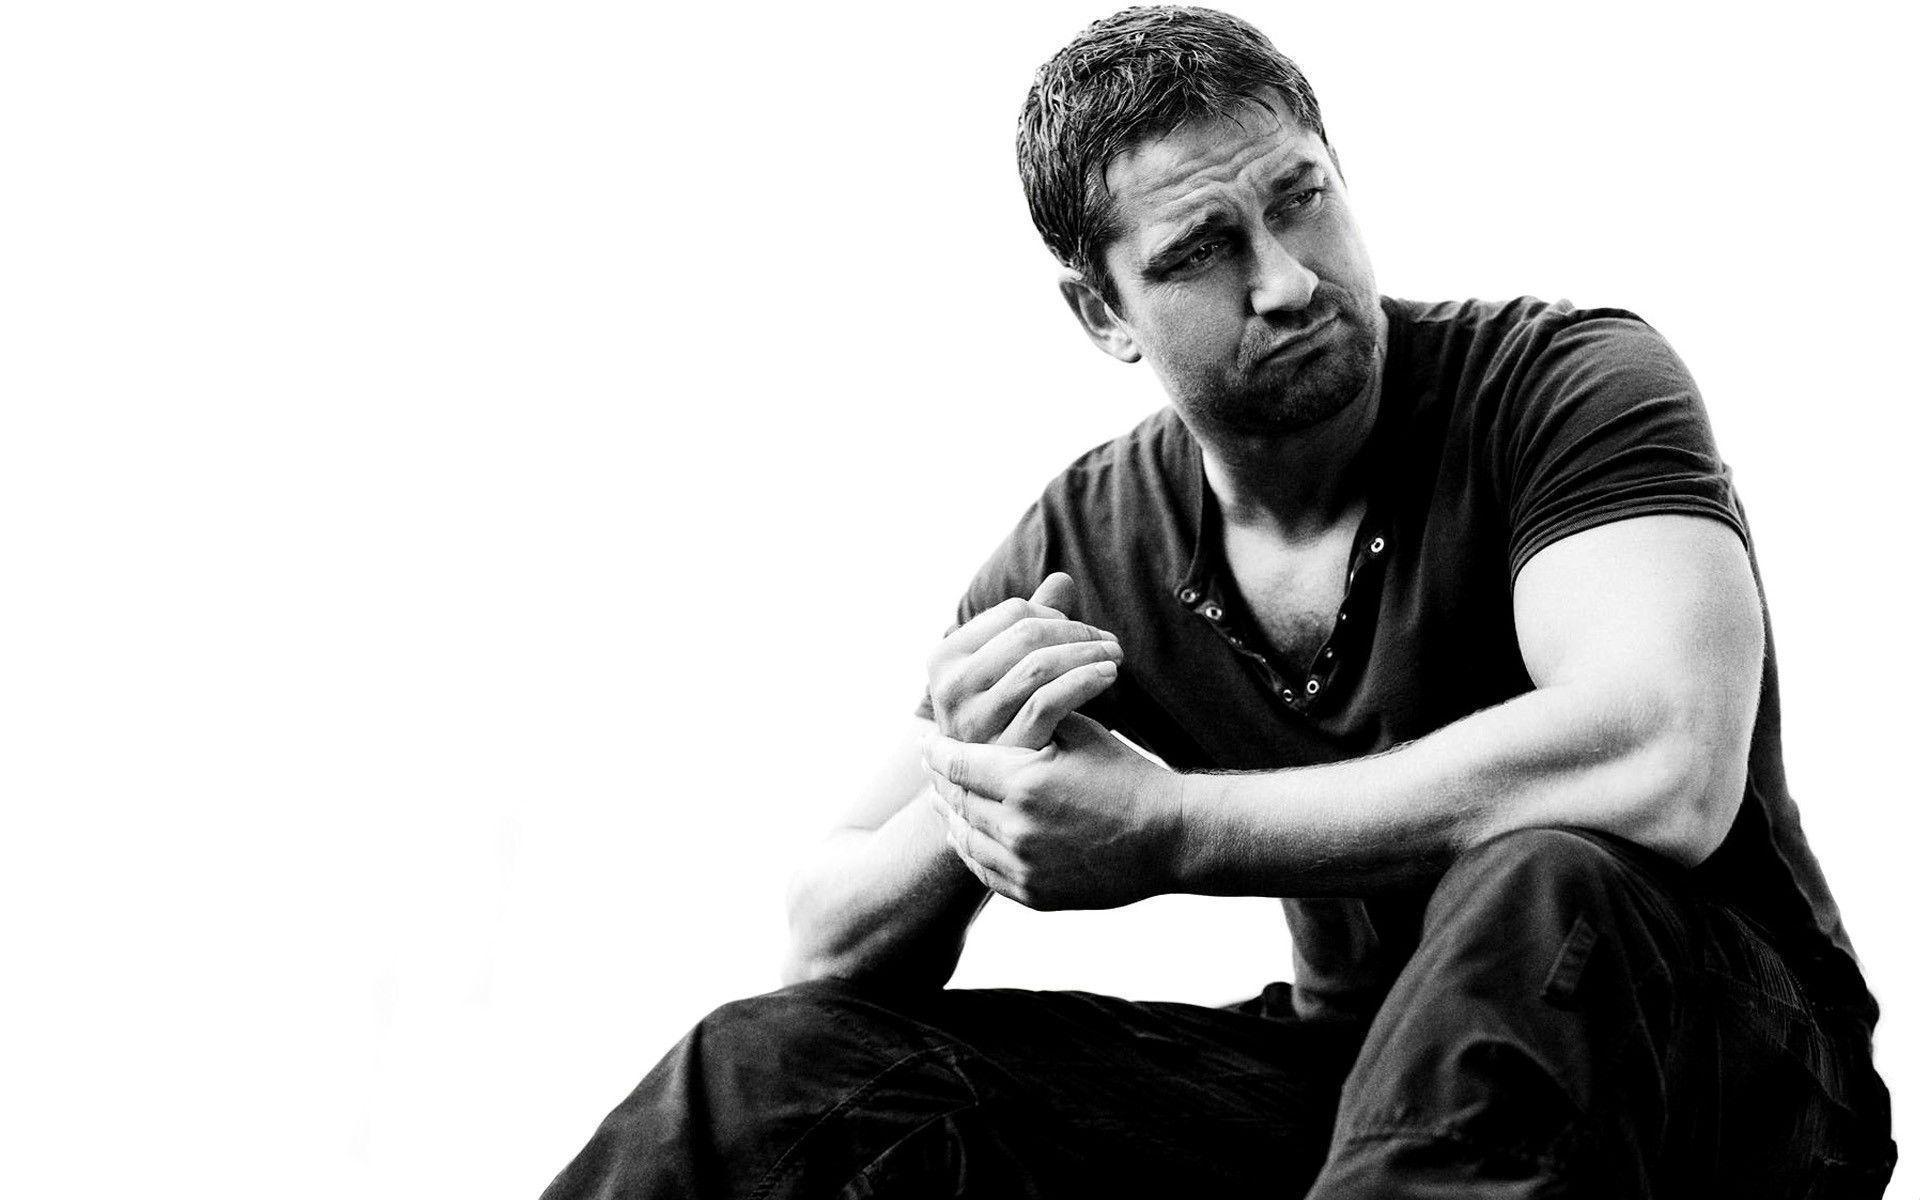 Gerard butler hd Wallpapers | Pictures